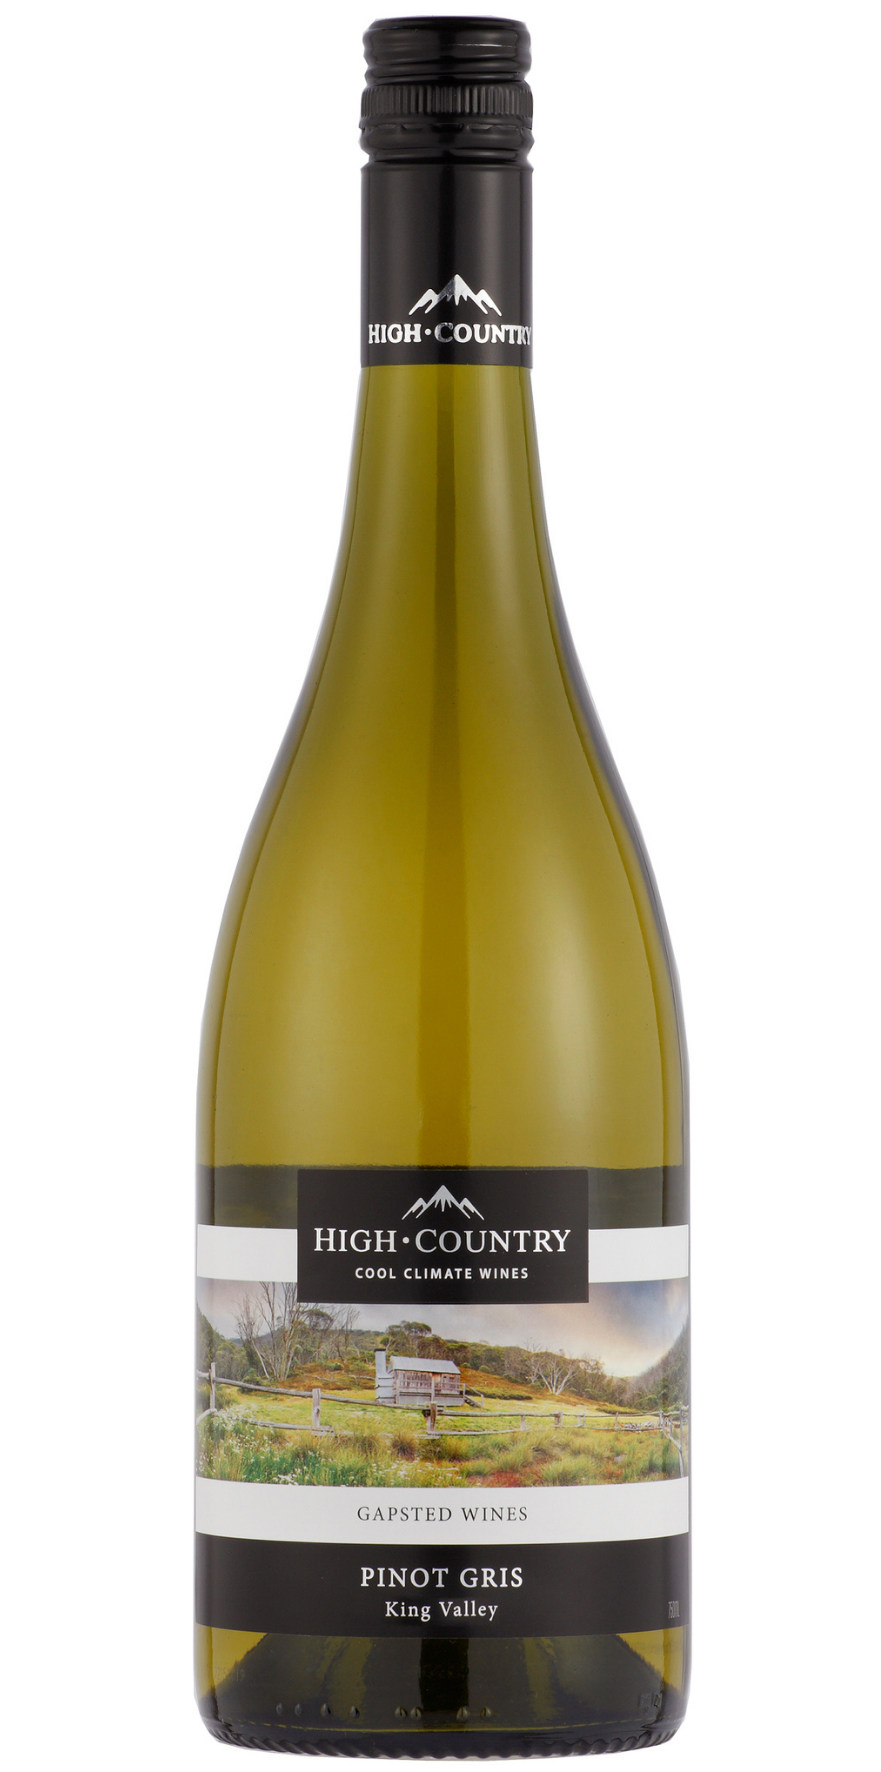 High Country 2020 Pinot Gris - Gapsted Wines